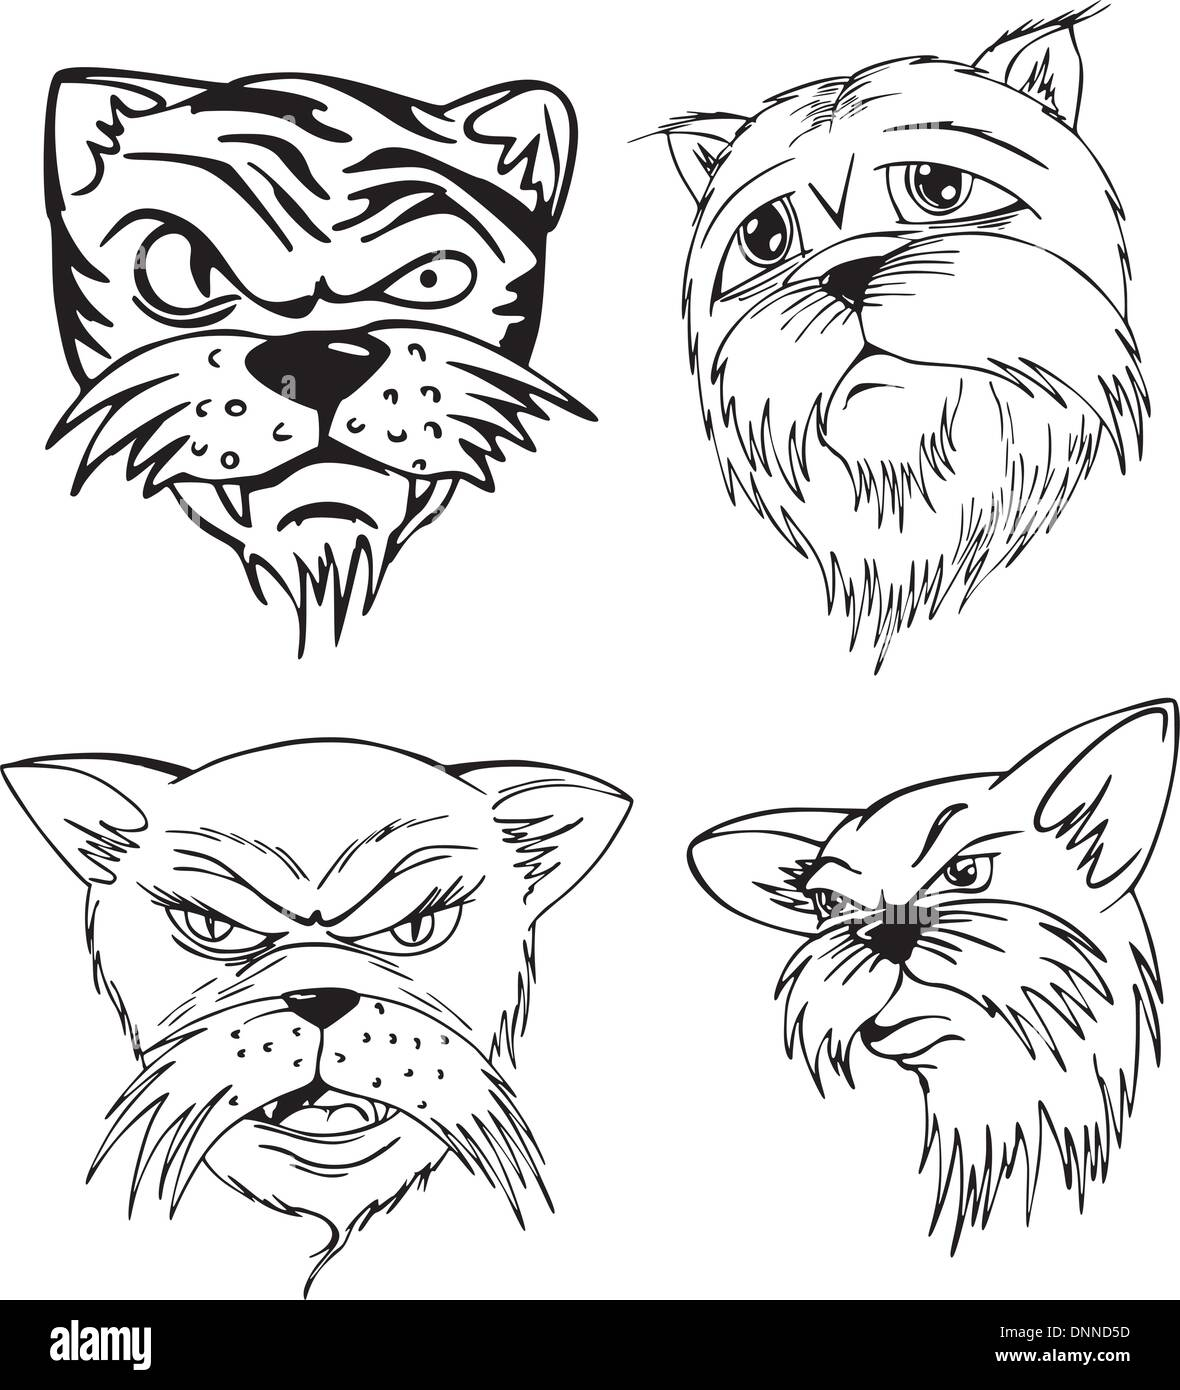 Aggressive cat heads. Set of black and white vector tattoo designs. - Stock Vector